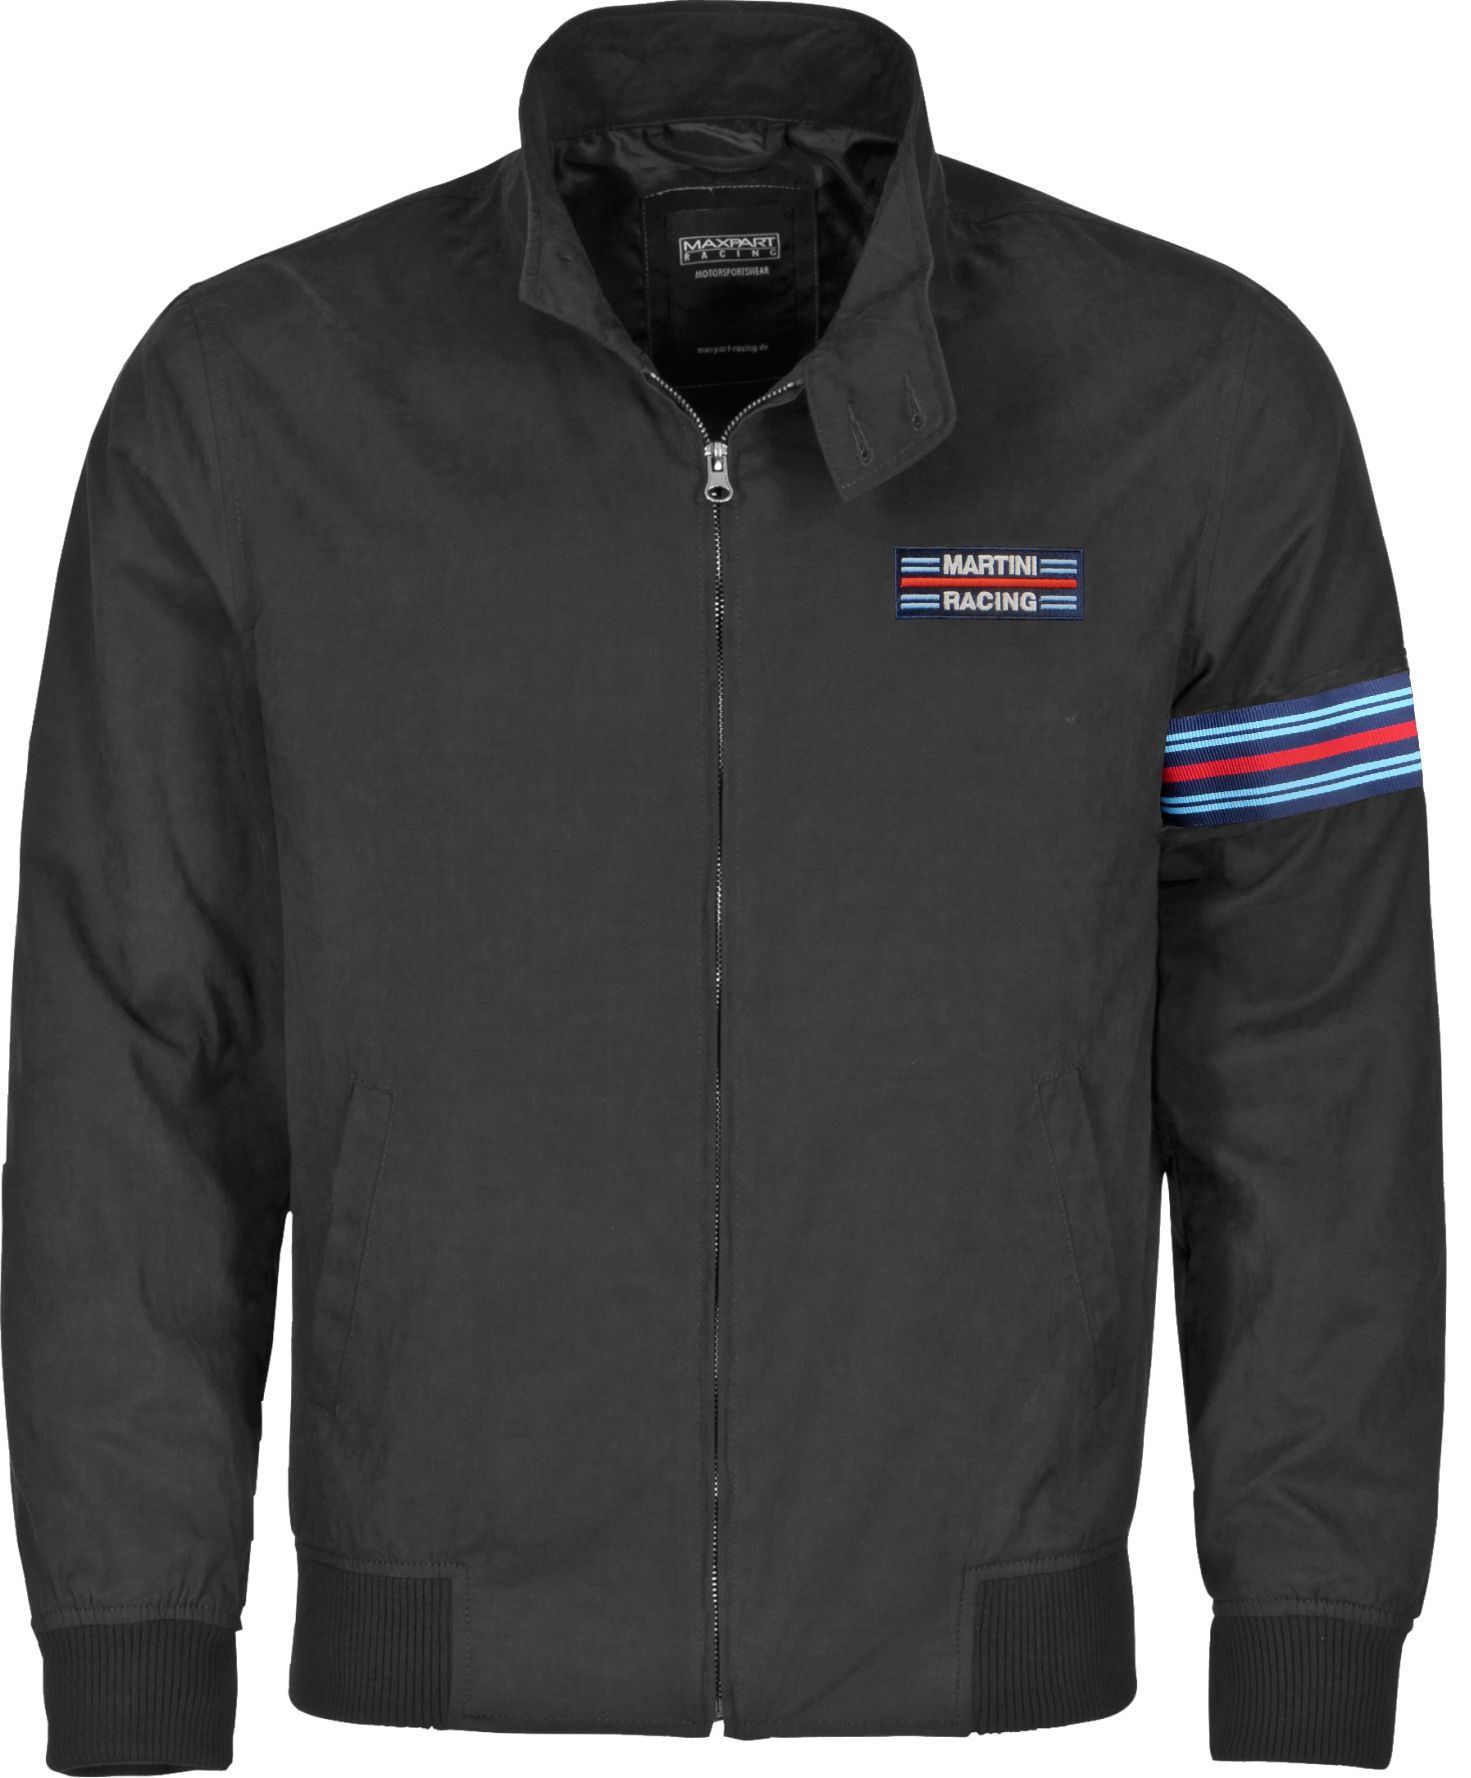 MARTINI RACING Bomber Jacket